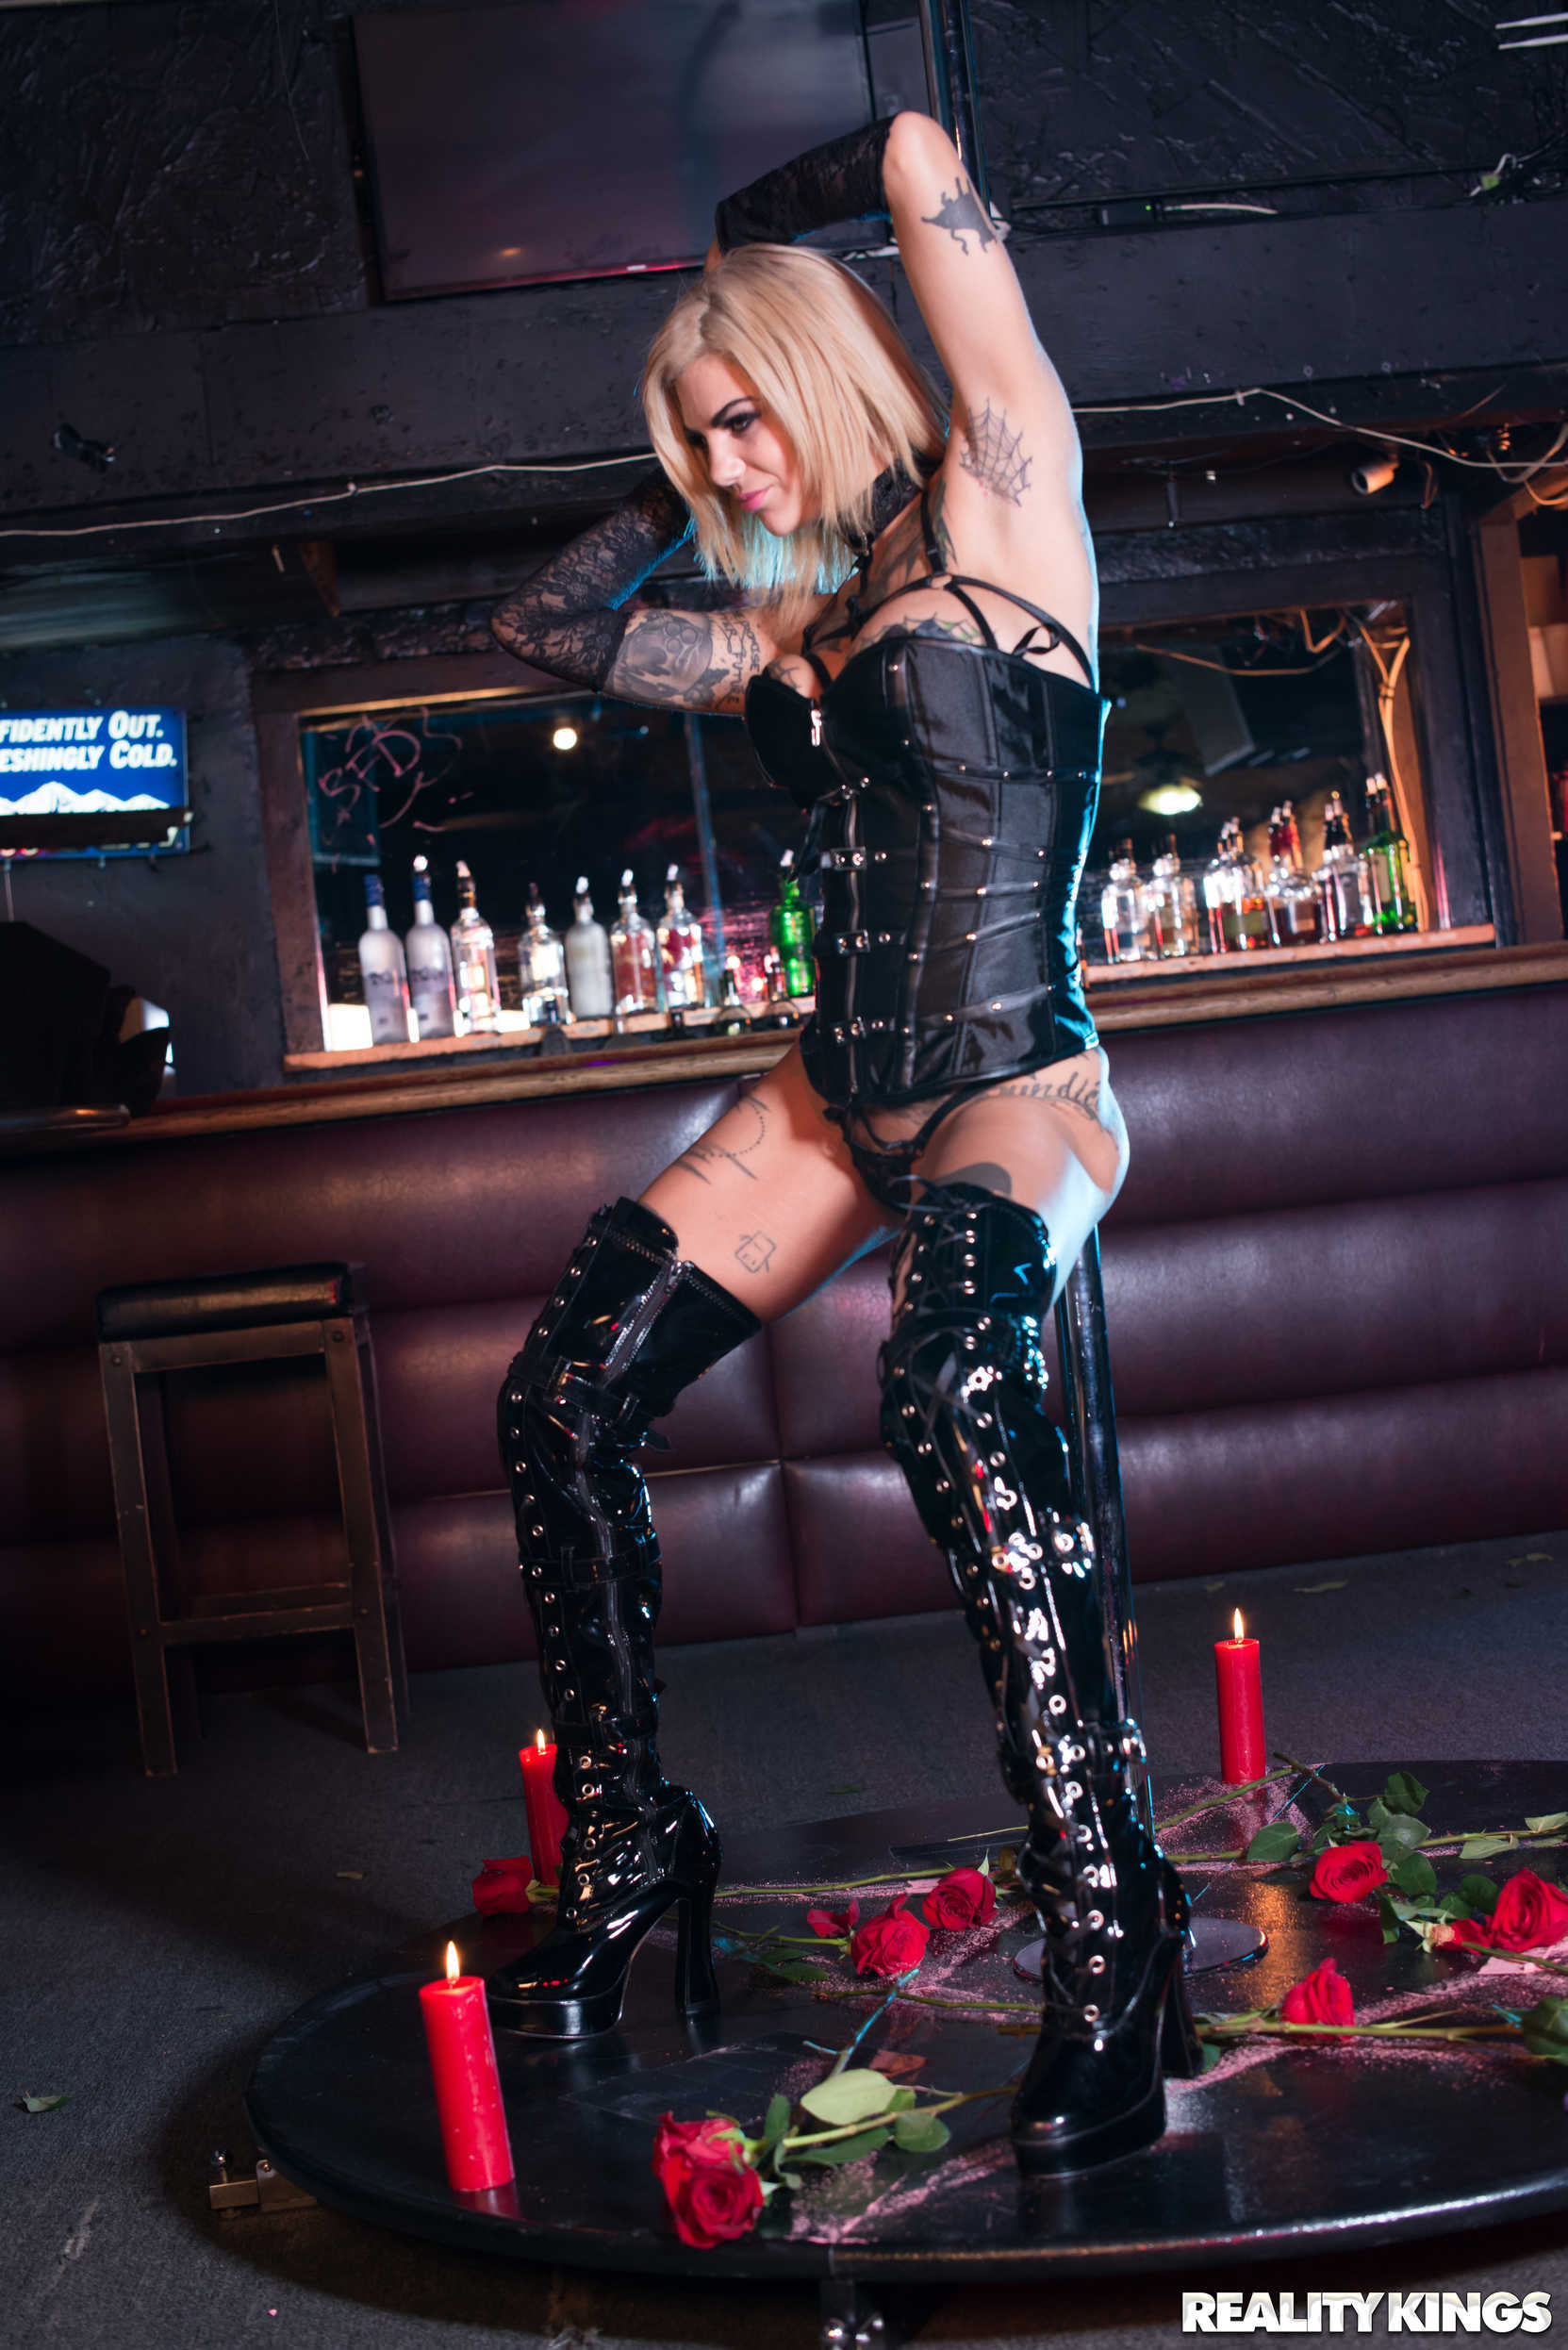 Reality Kings 'Pitch Black Pole Dancer' starring Bonnie Rotten (Photo 24)